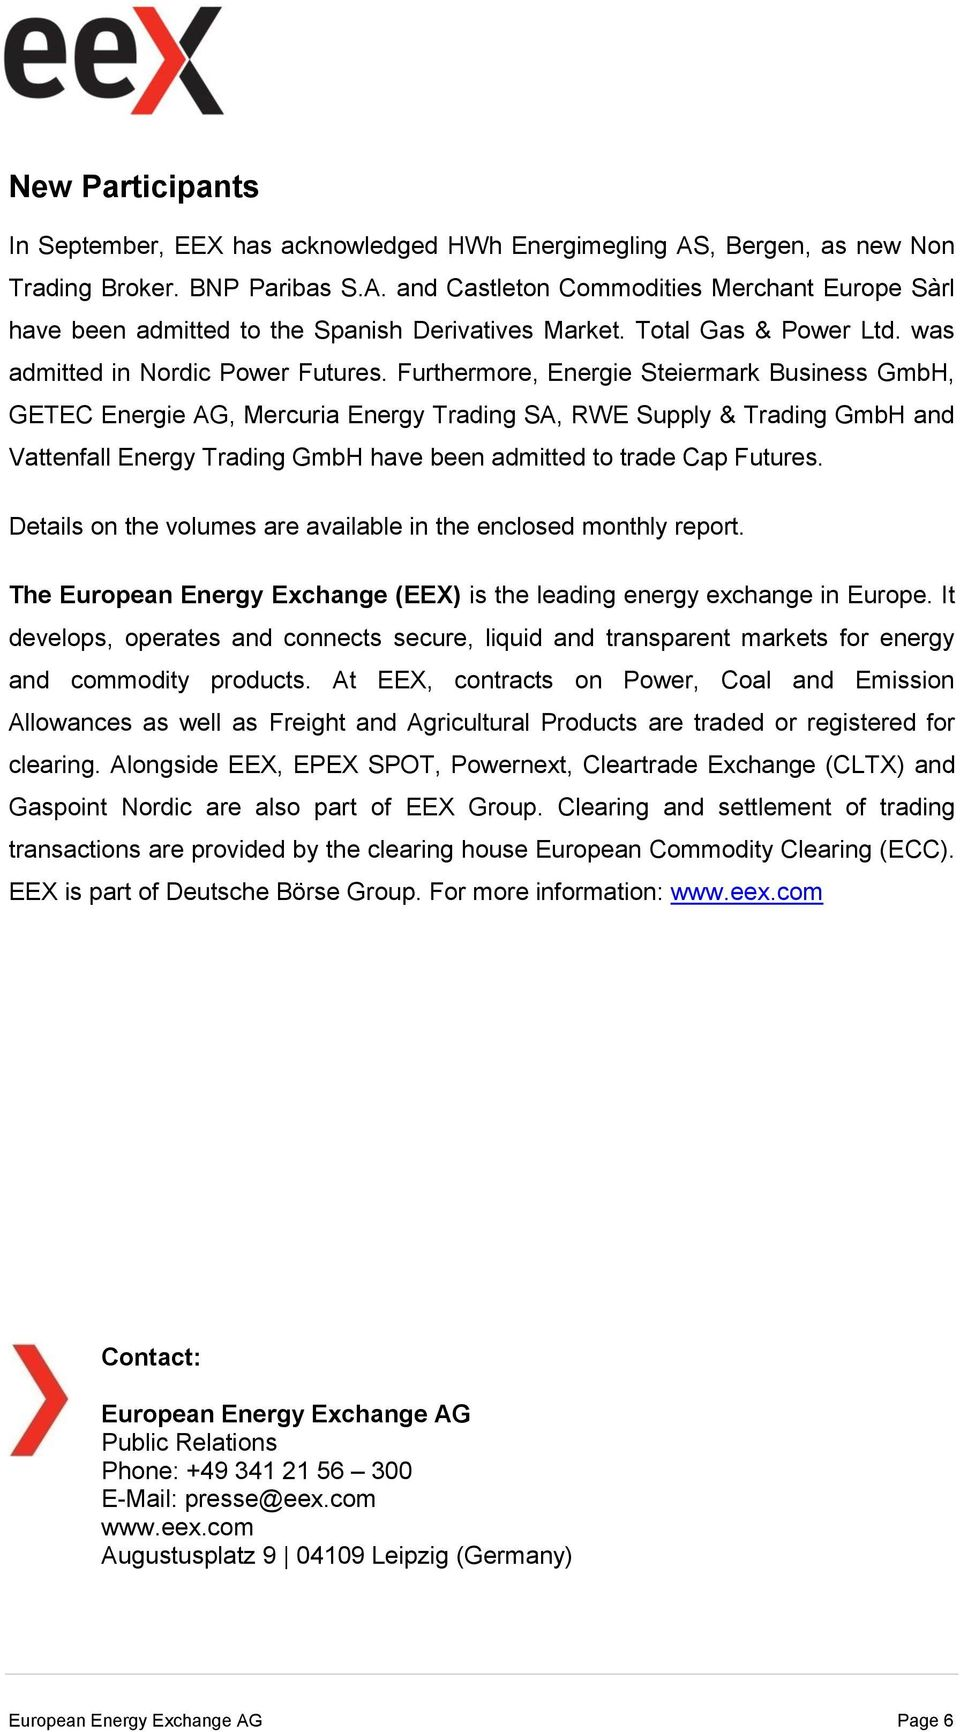 Furthermore, Energie Steiermark Business GmbH, GETEC Energie AG, Mercuria Energy Trading SA, RWE Supply & Trading GmbH and Vattenfall Energy Trading GmbH have been admitted to trade Cap Futures.